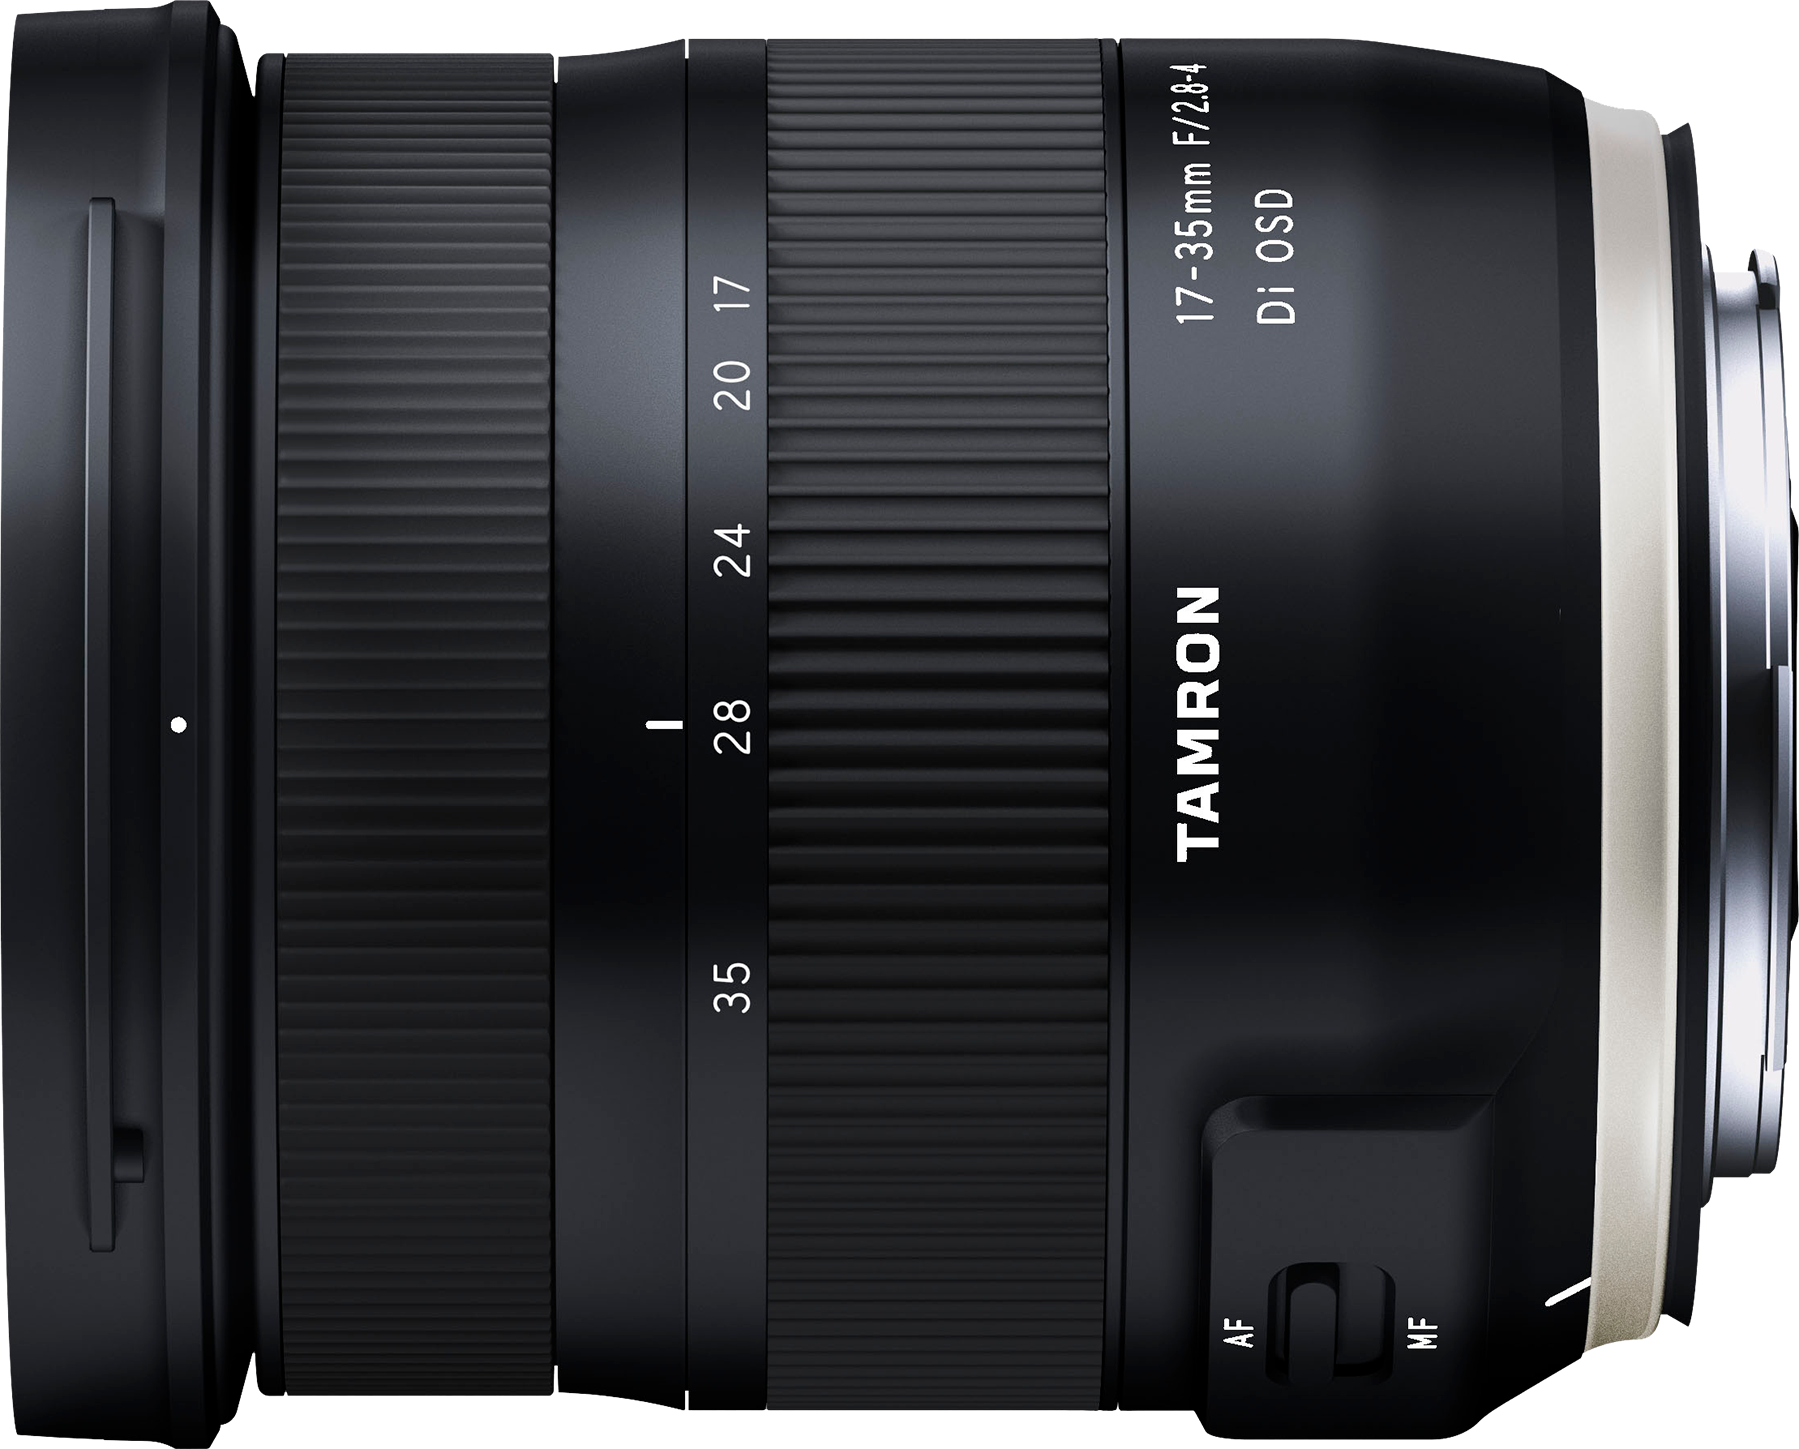 Tamron 17-35mm F2.8-4 Di OSD: Digital Photography Review